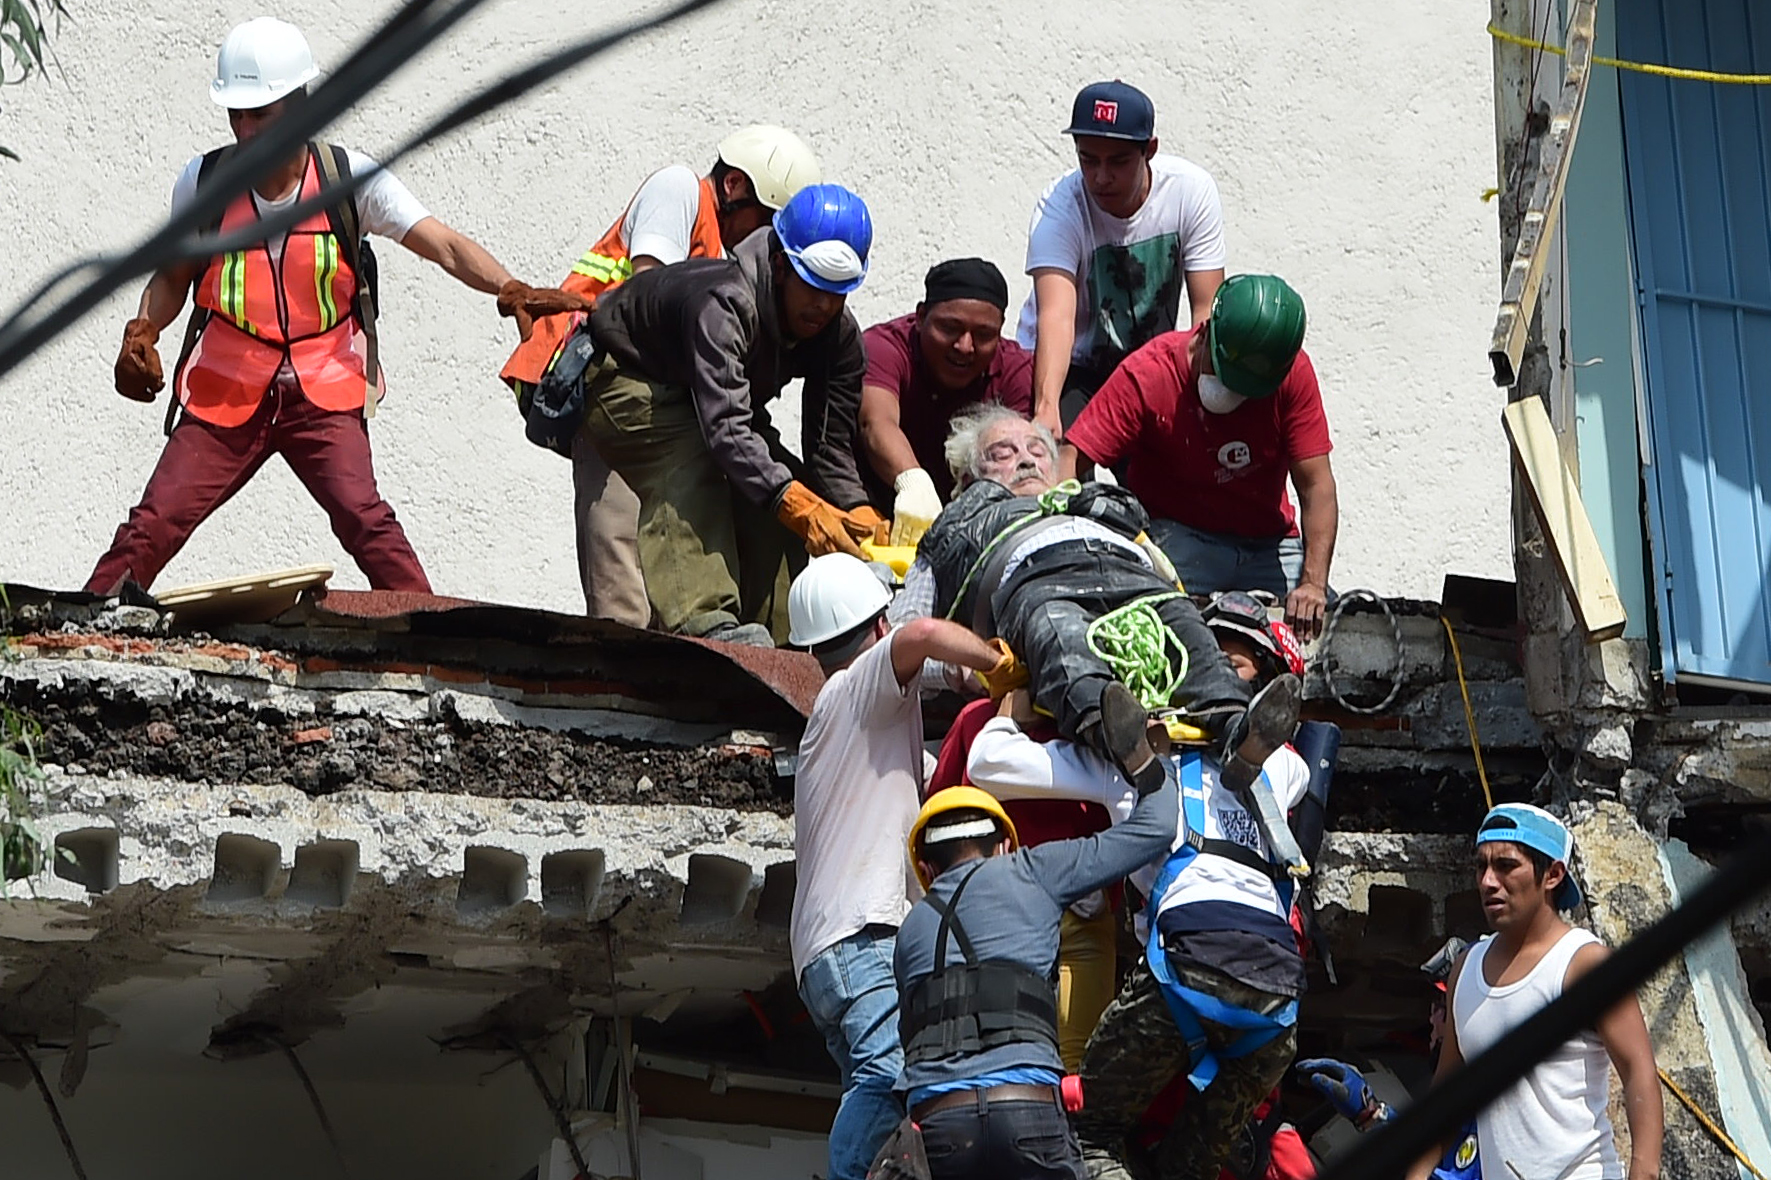 A man is pulled out of the rubble alive following a quake in Mexico City on September 19, 2017. A powerful earthquake shook Mexico City on Tuesday, causing panic among the megalopolis' 20 million inhabitants on the 32nd anniversary of a devastating 1985 quake. The US Geological Survey put the quake's magnitude at 7.1 while Mexico's Seismological Institute said it measured 6.8 on its scale. The institute said the quake's epicenter was seven kilometers west of Chiautla de Tapia, in the neighboring state of Puebla.  / AFP PHOTO / Ronaldo SCHEMIDT